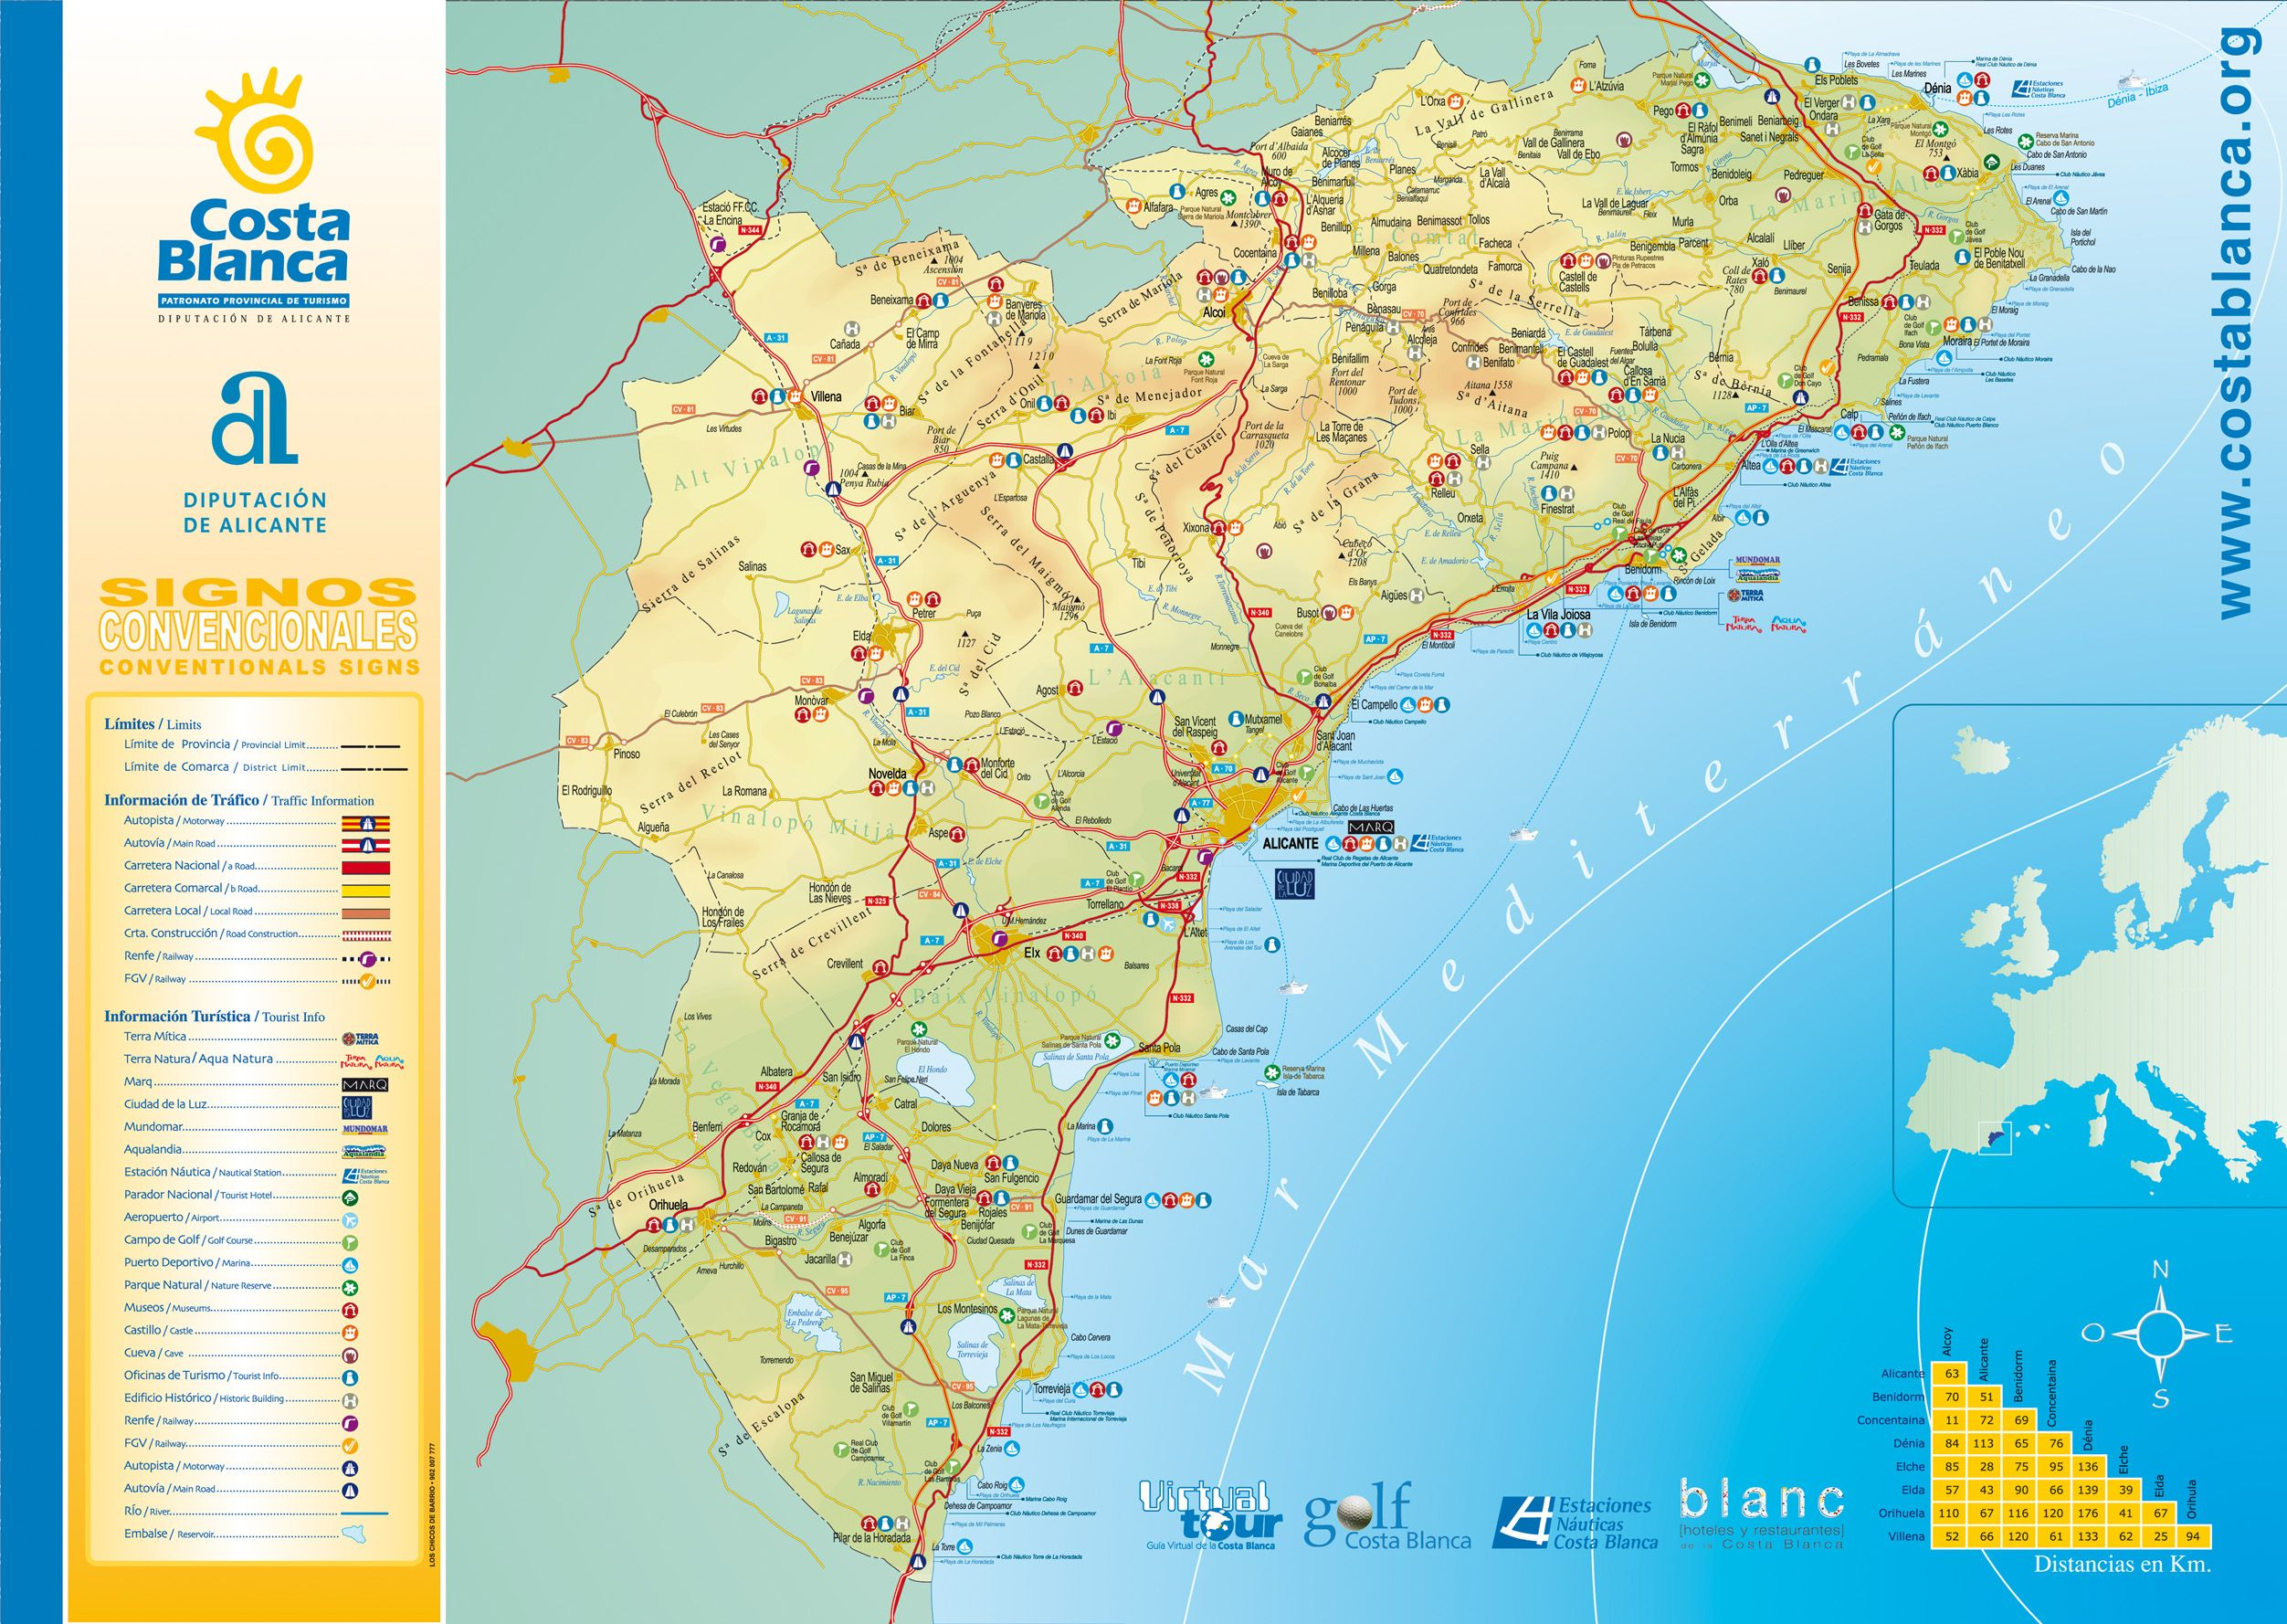 alicante tourist attractions  costa blanca  san juan beach  - see map of costa blanca (click